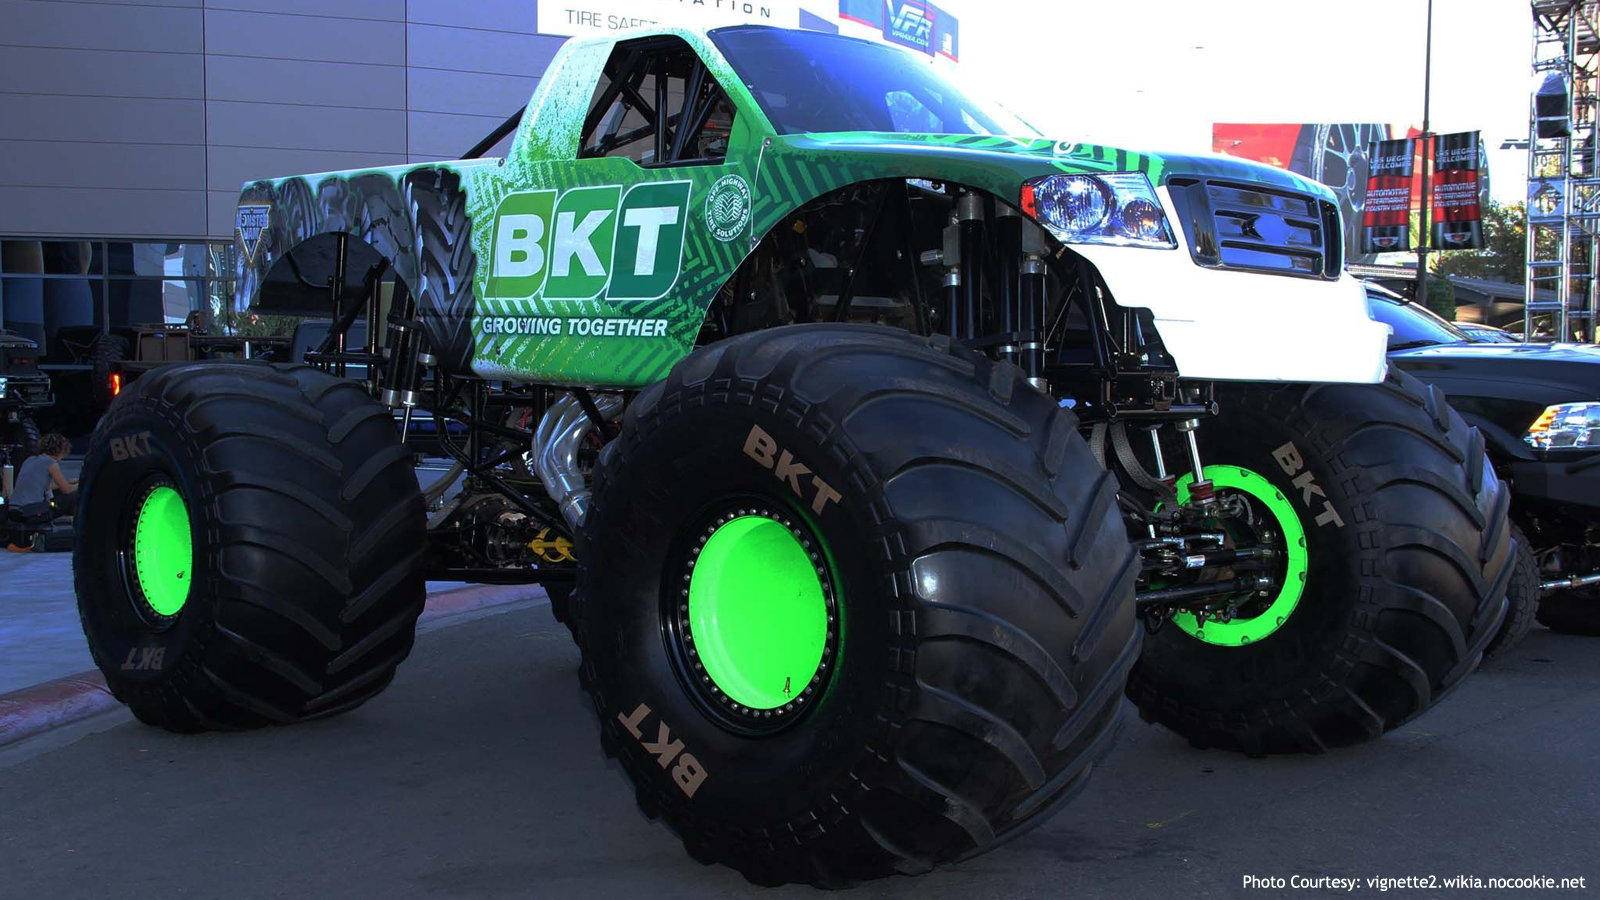 Ford BKT Monster